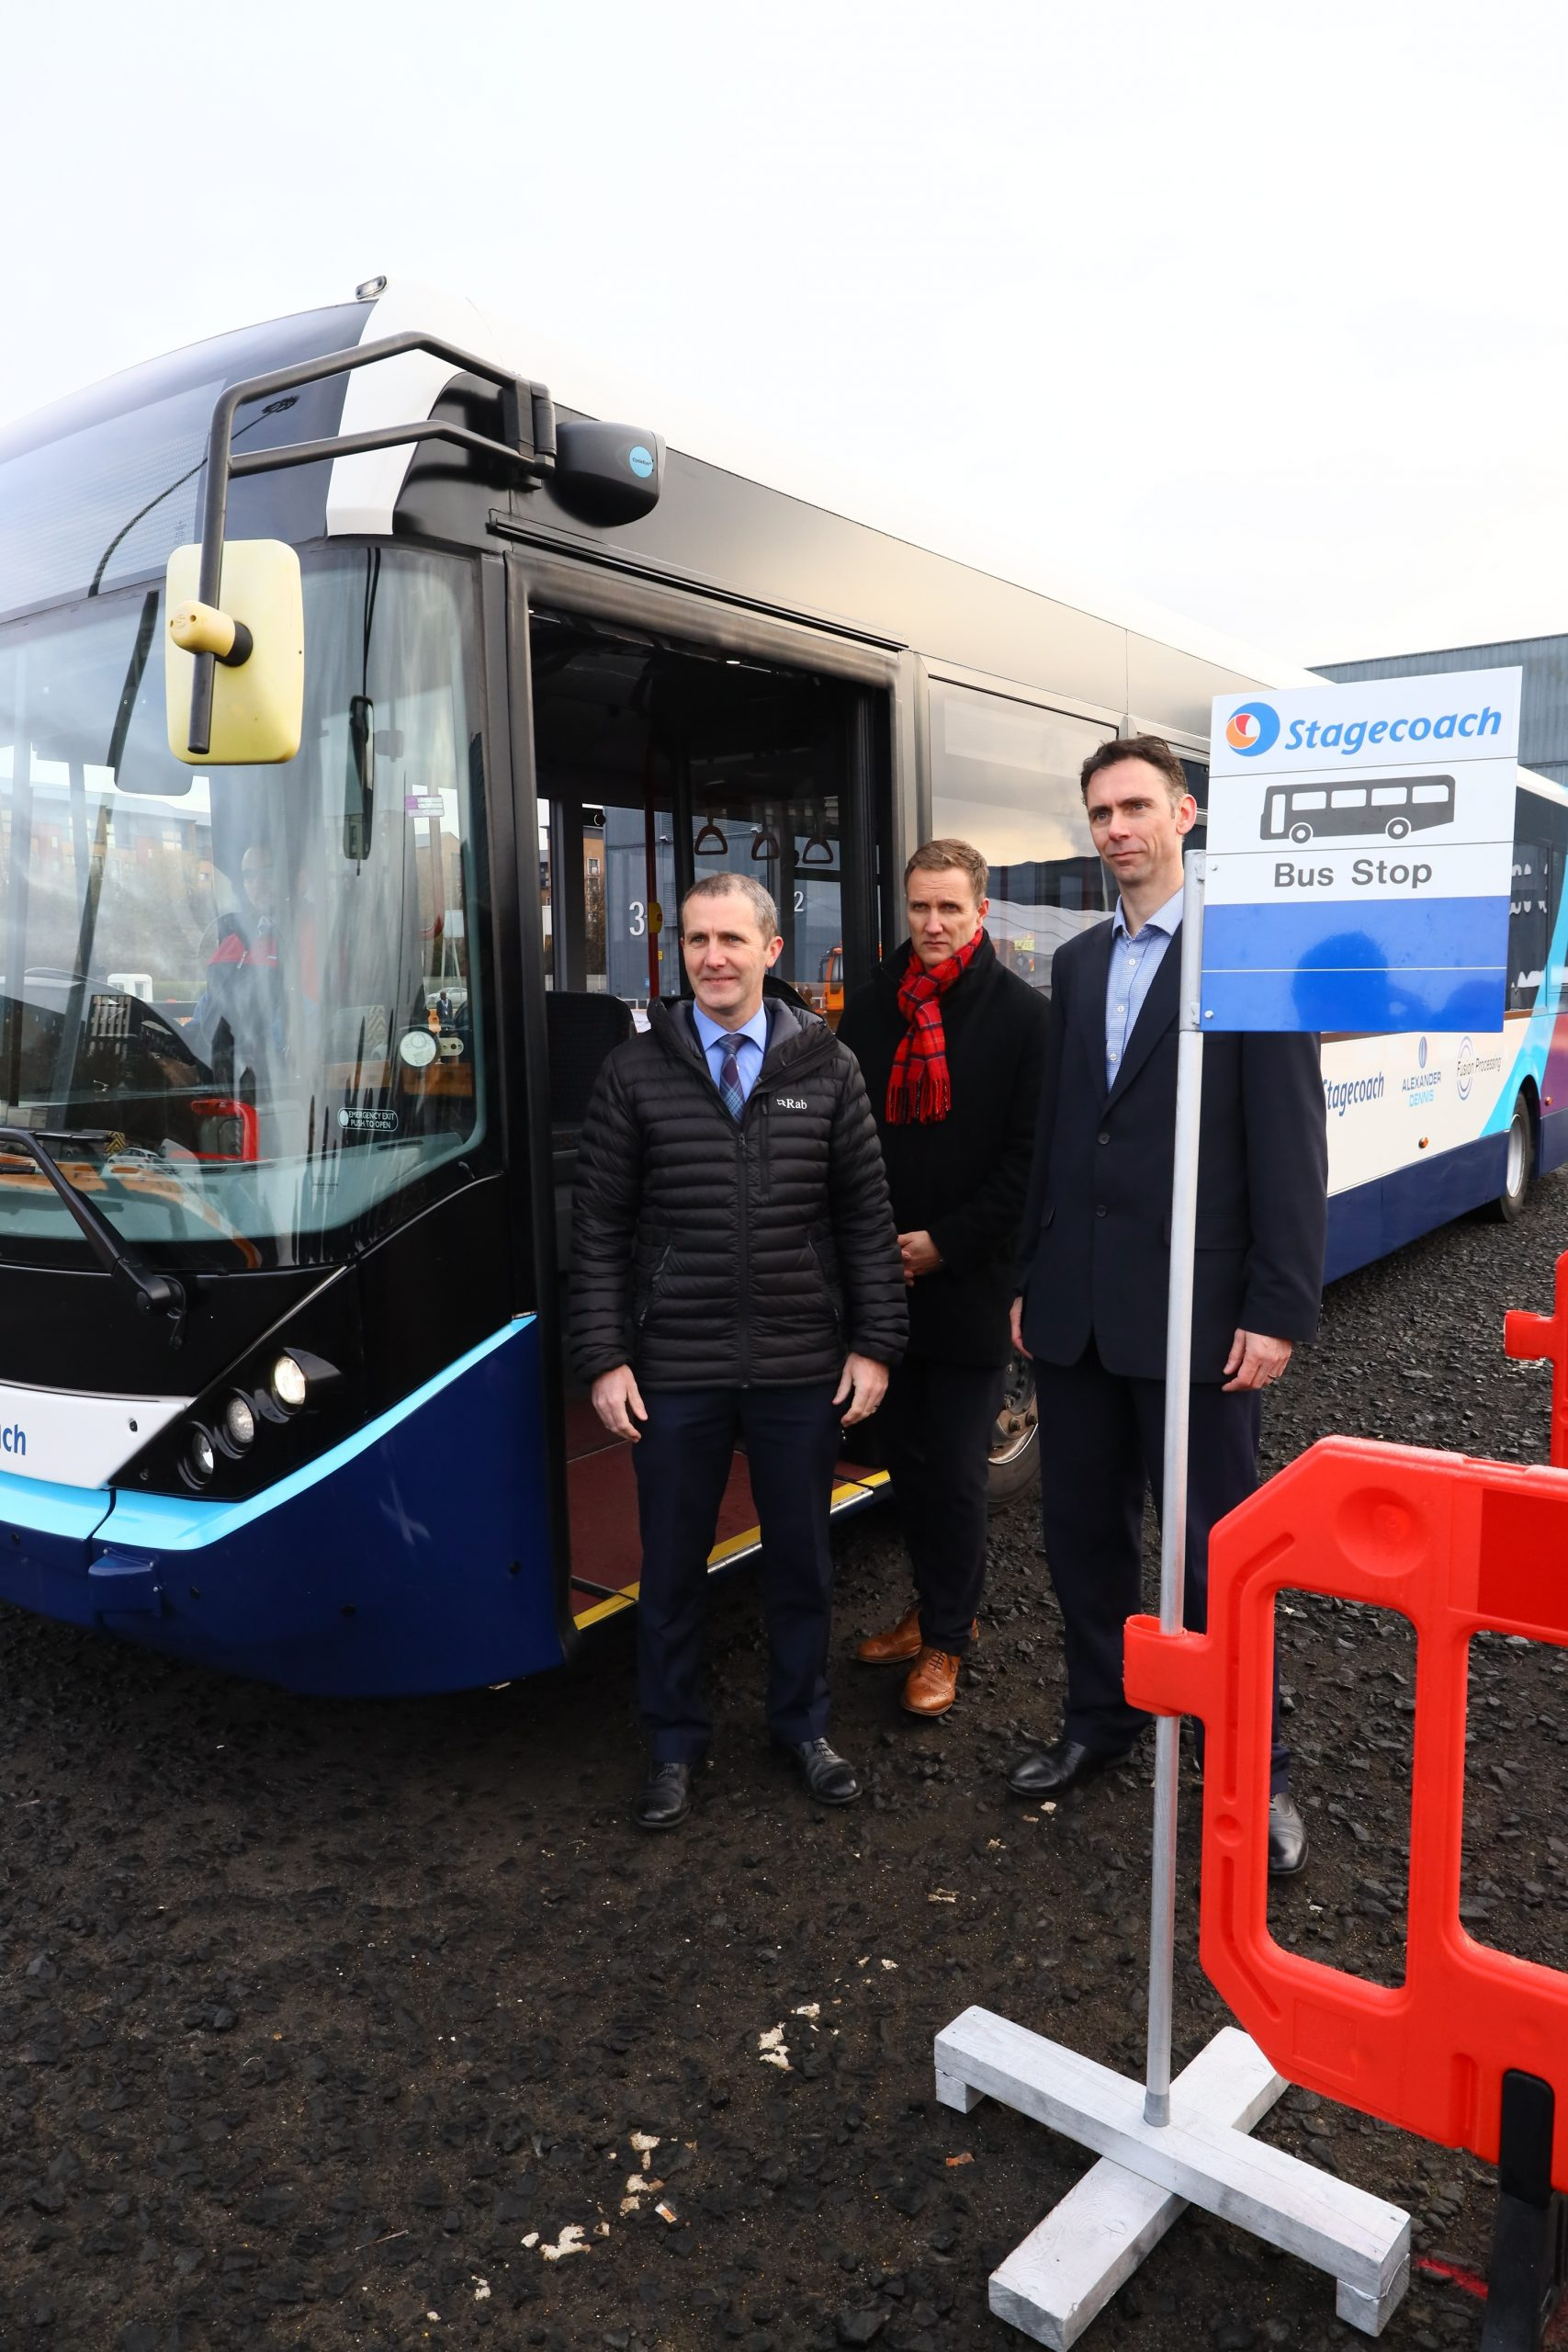 , Scotland sees first demonstration of Europe's first full-sized autonomous bus, Skem News - The Top Source for Skelmersdale News